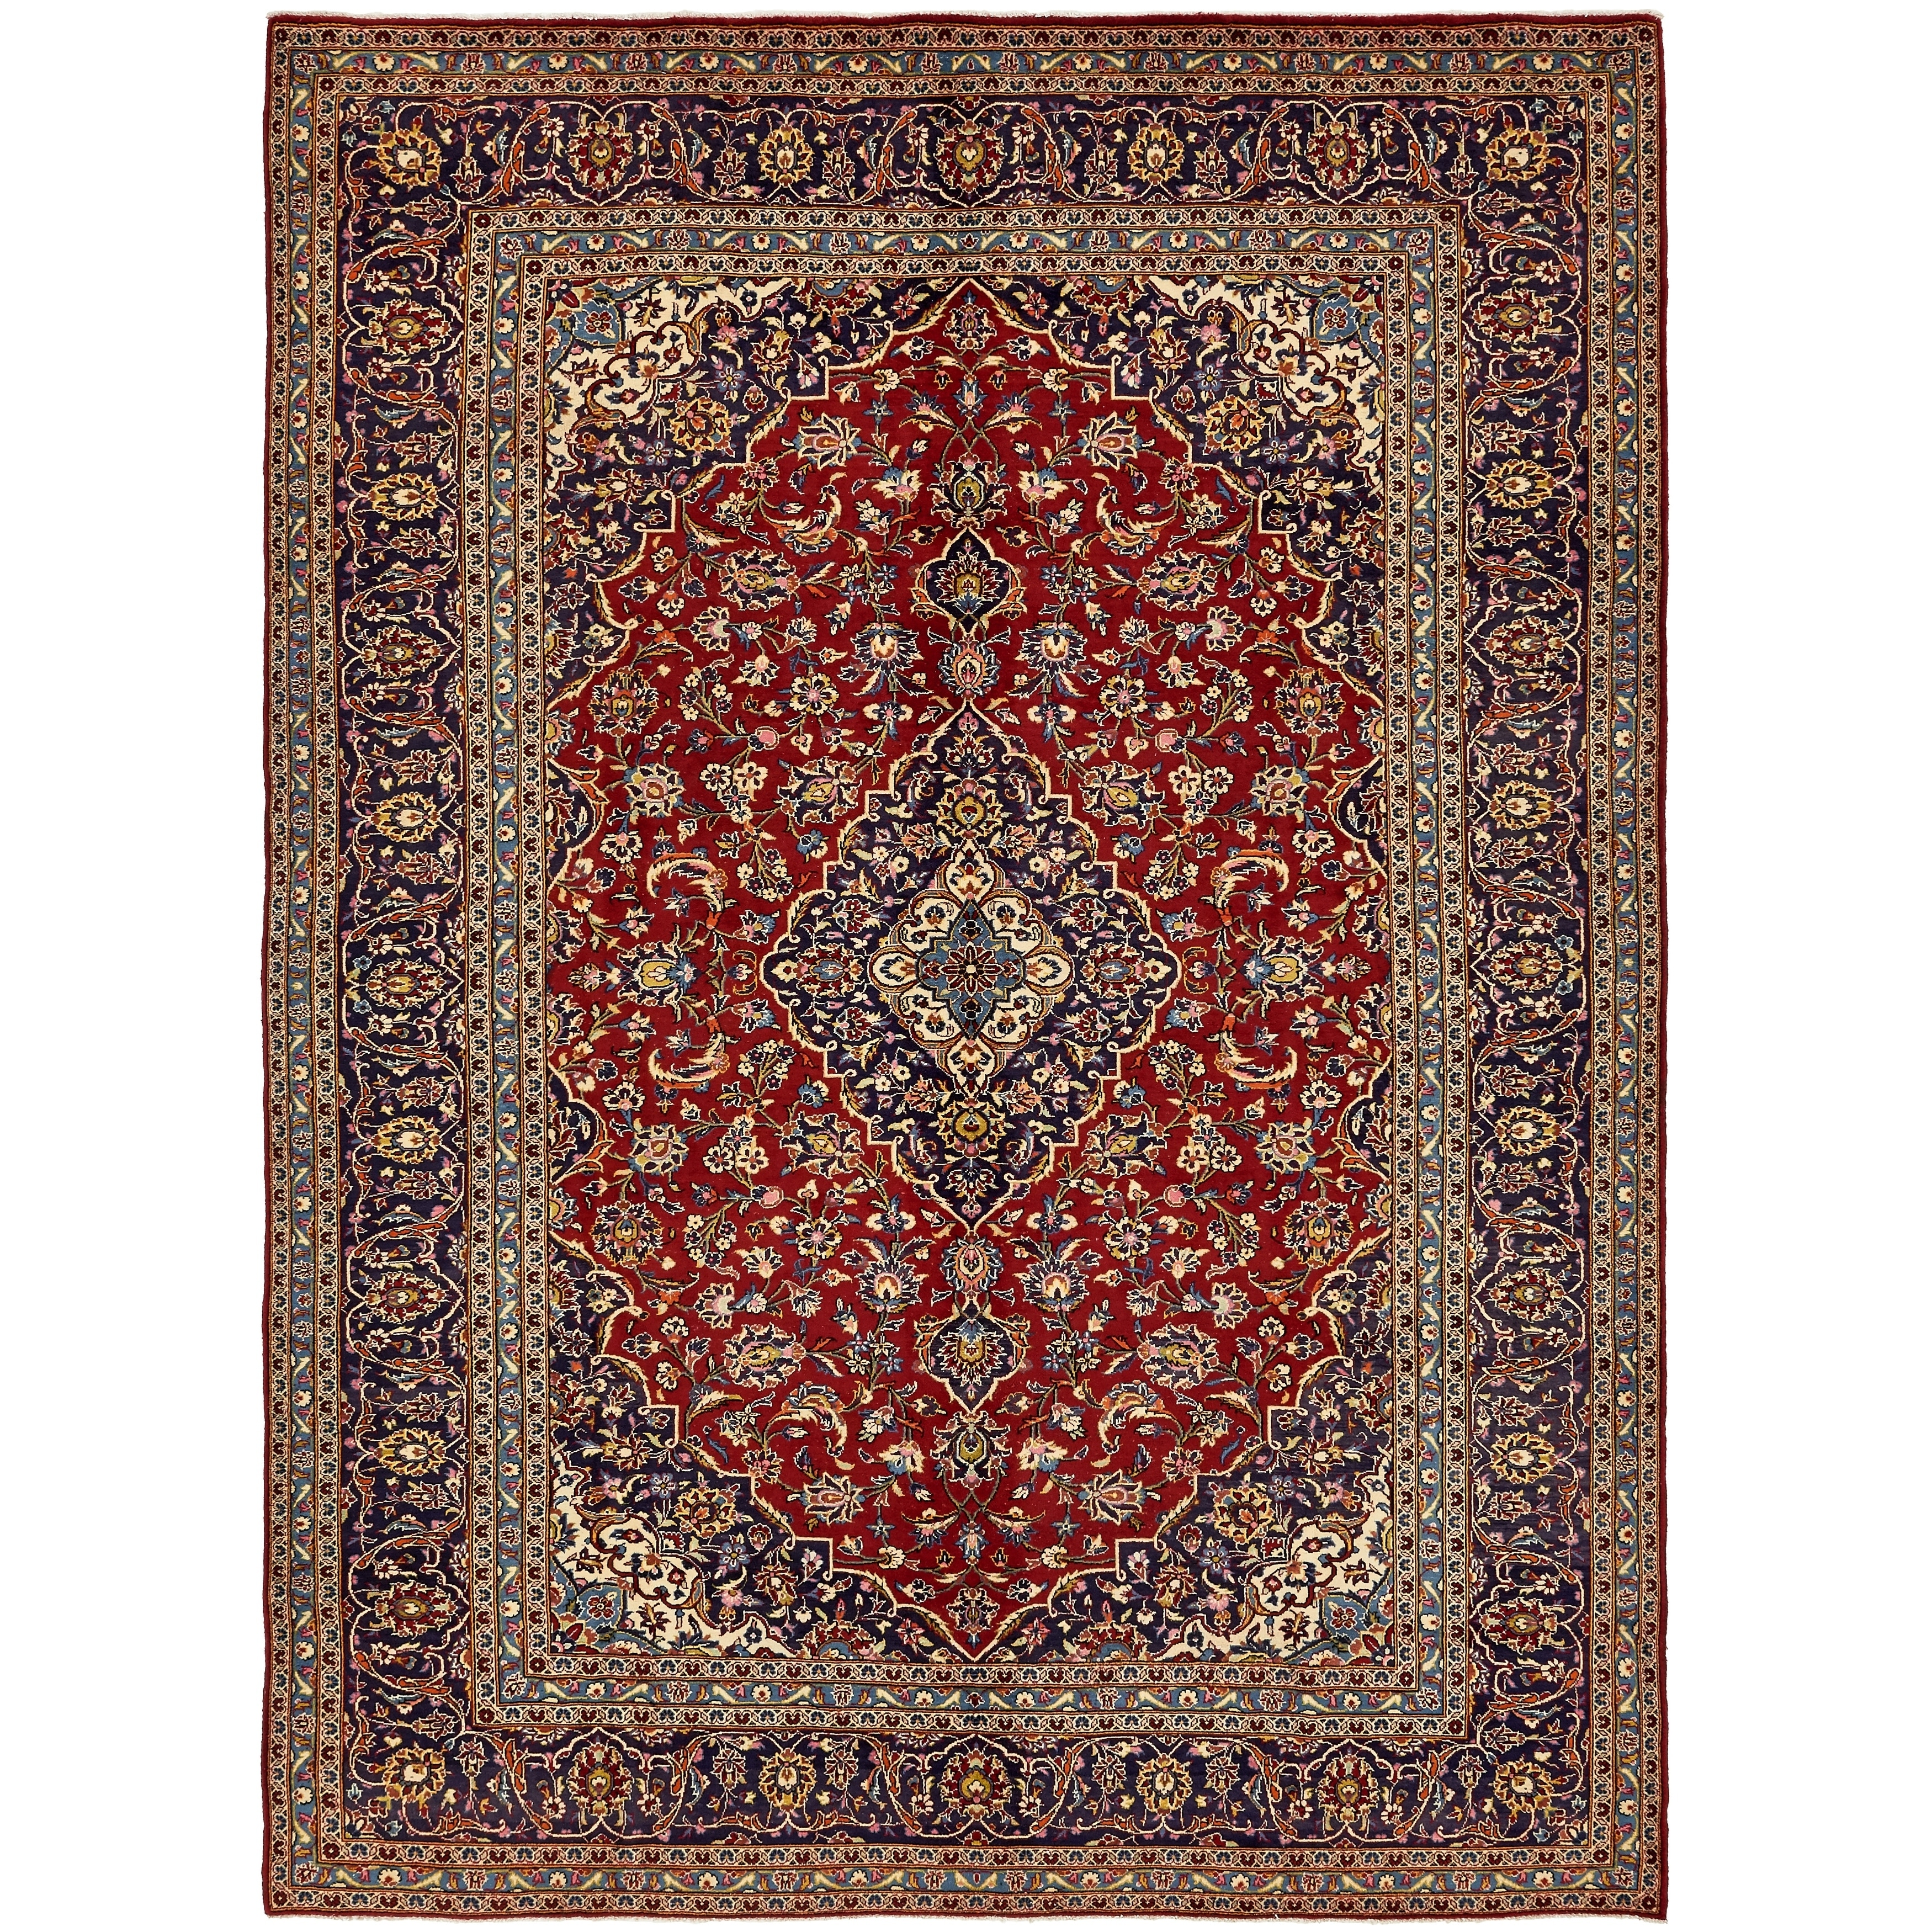 Hand Knotted Kashan Semi Antique Wool Area Rug - 9' 9 x 13' (Red - 9' 9 x 13')